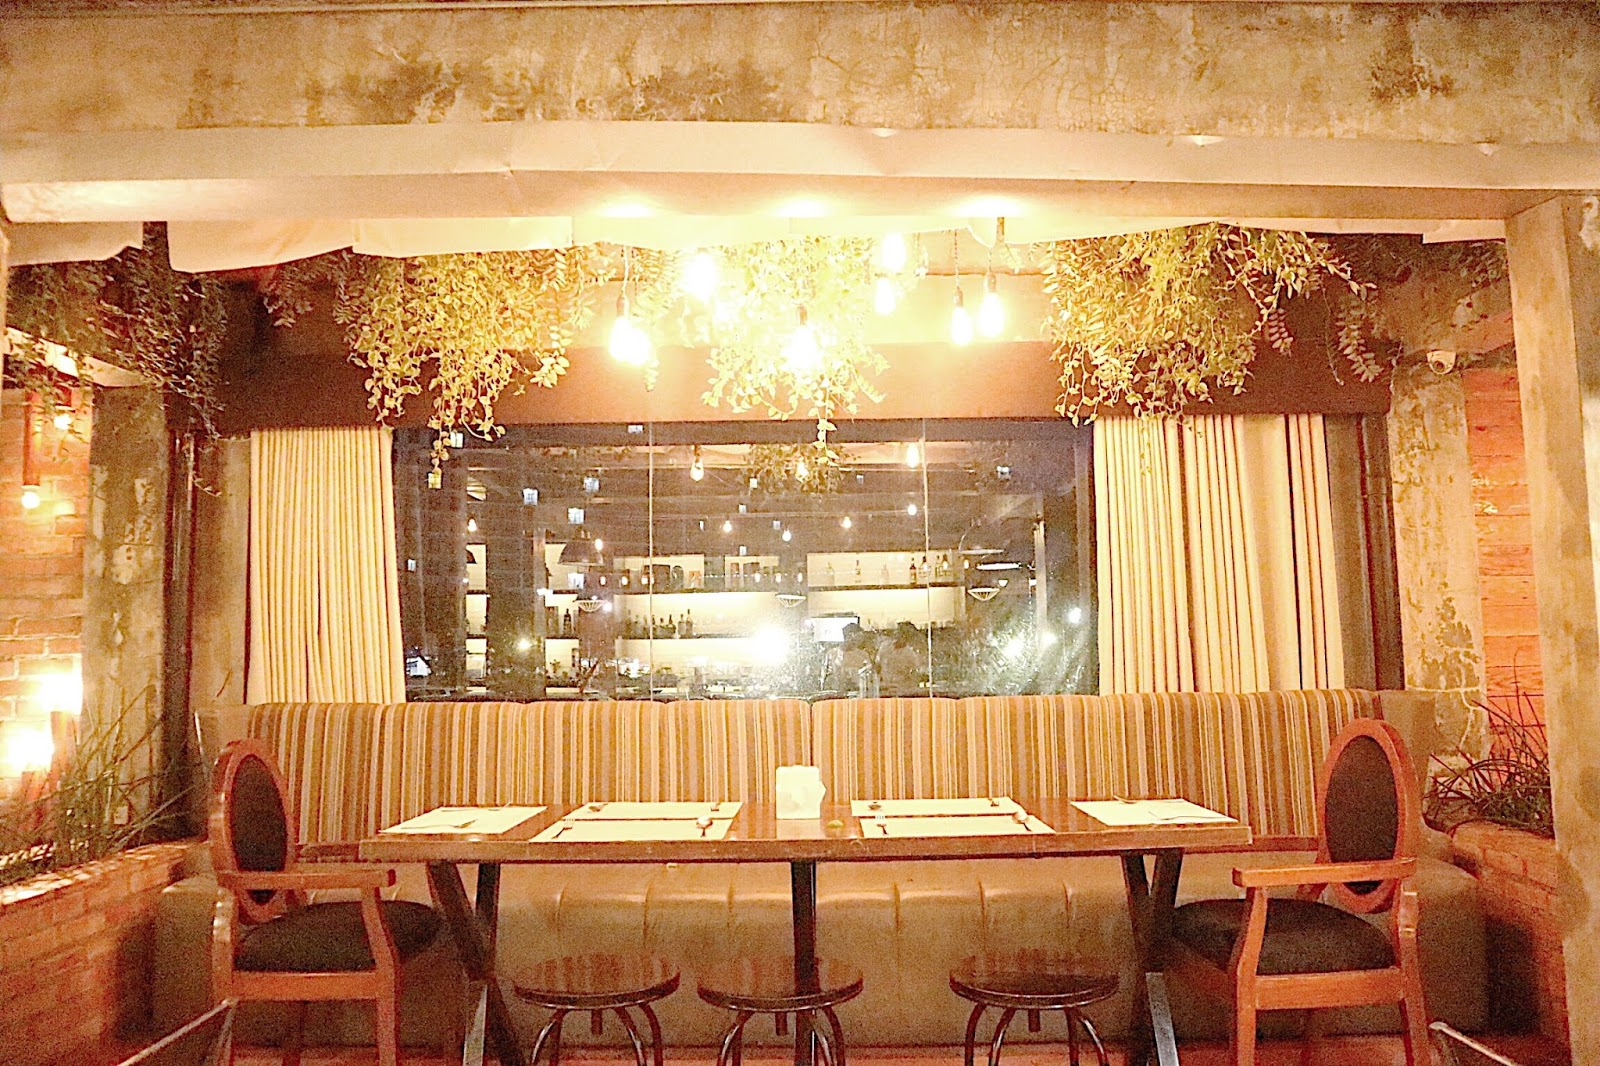 The lake district restaurant and lounge tagaytay